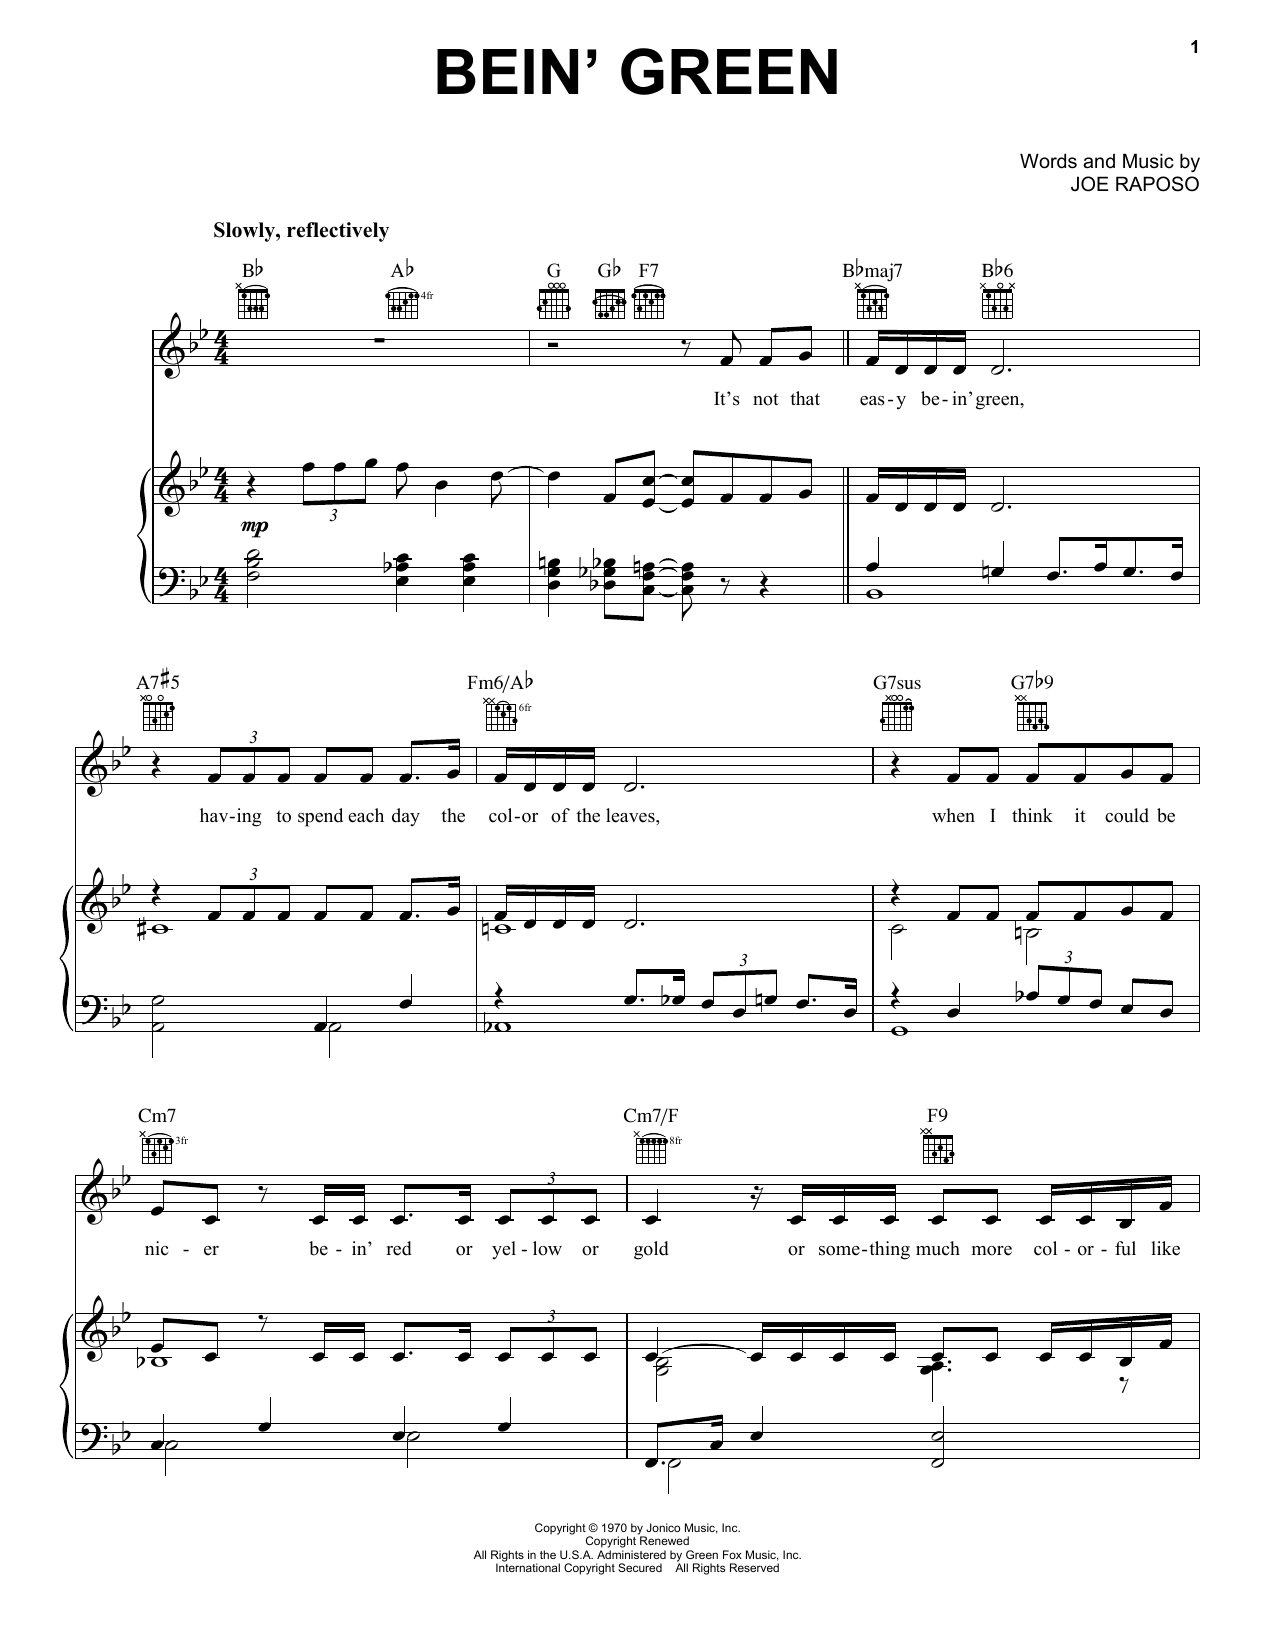 Kermit The Frog Bein' Green sheet music notes and chords